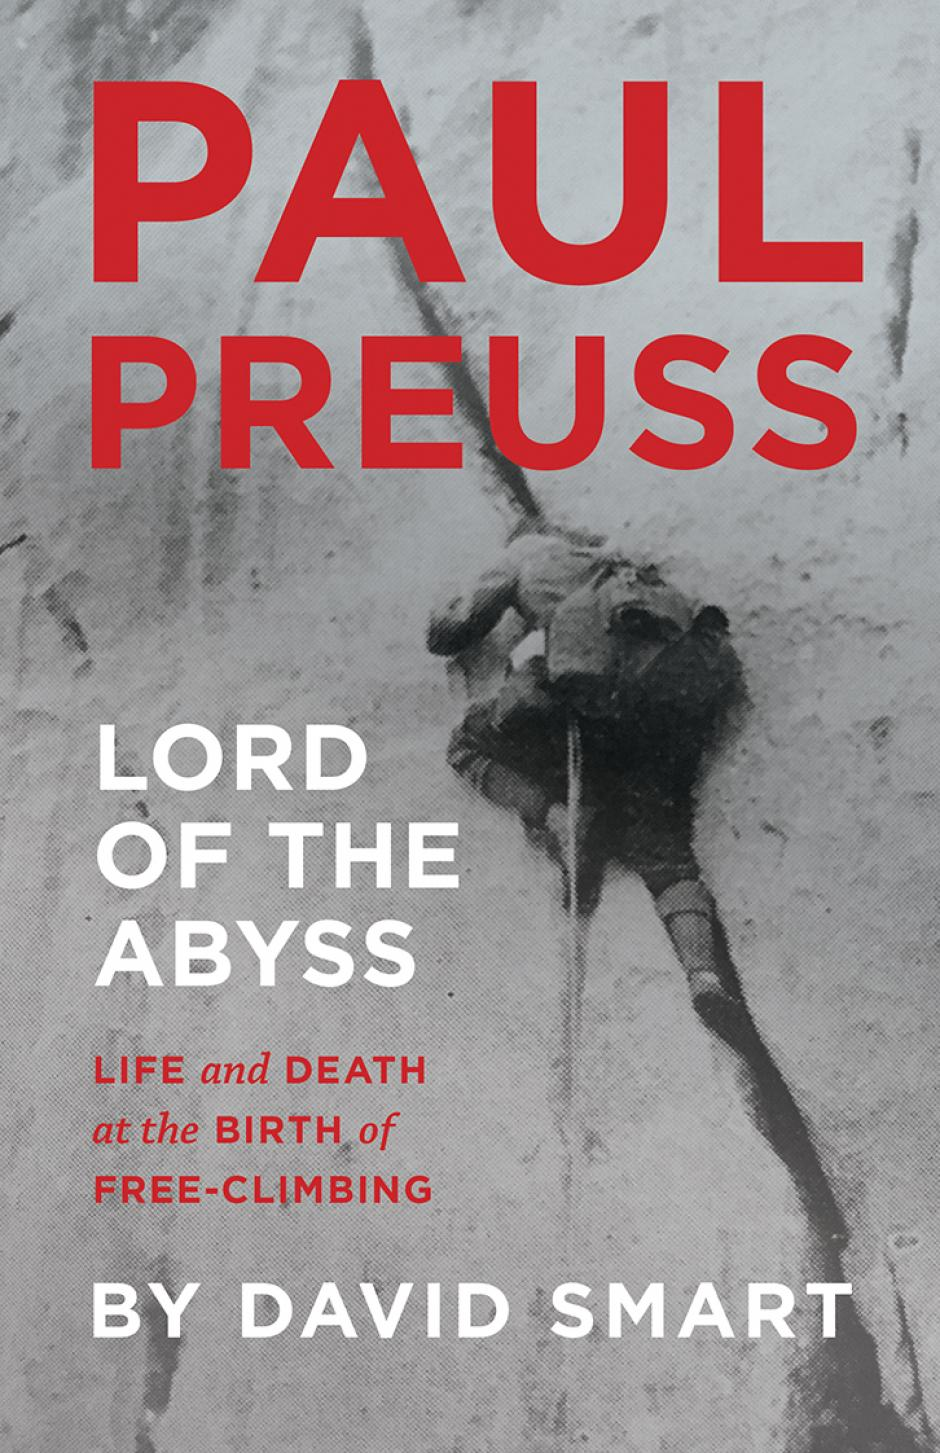 Paul Preuss: Lord of the Abyss by David Smart book cover